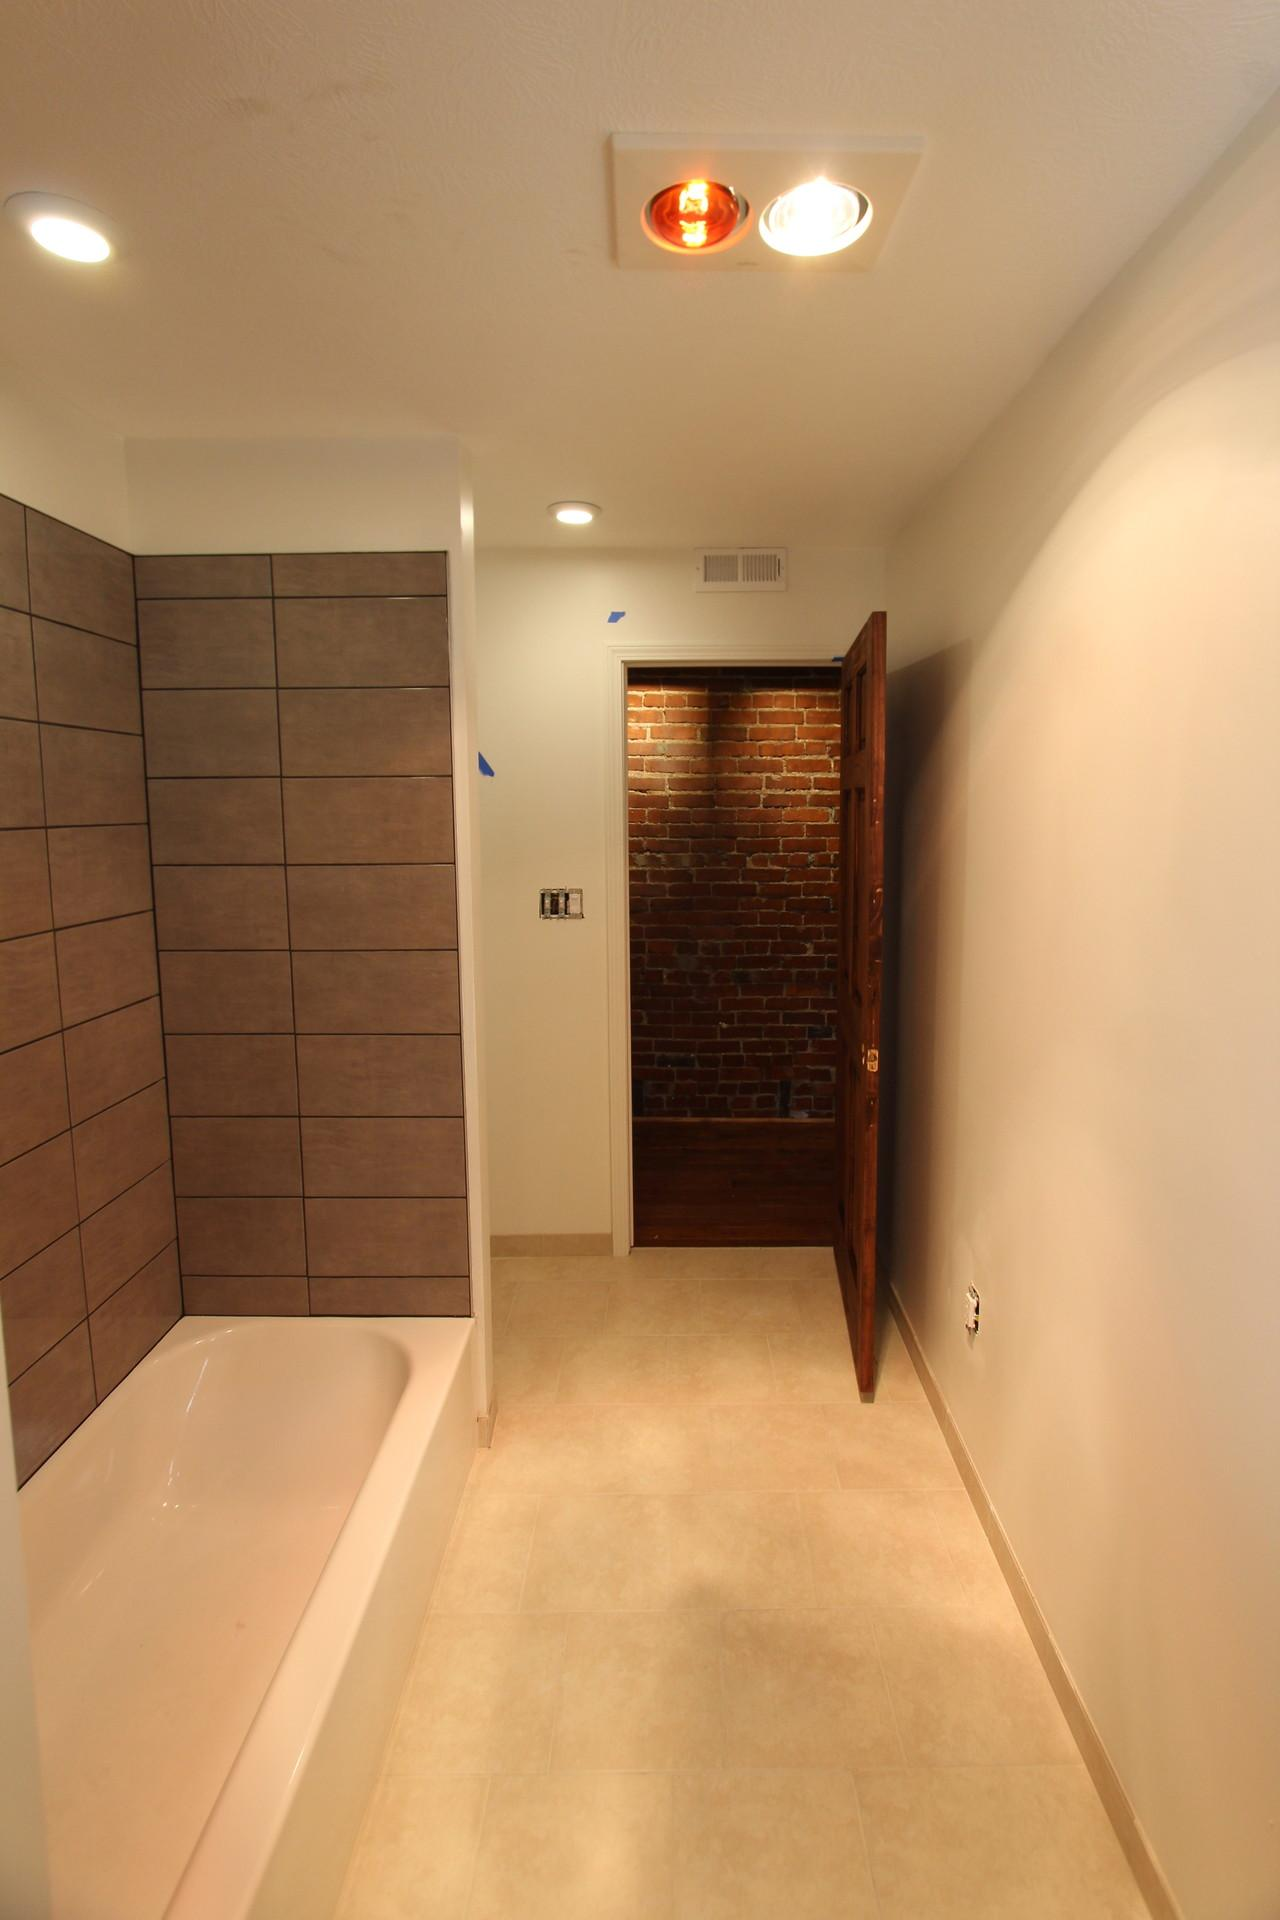 NORTH SHORE AREA LARGE LUX 2BR LOFT STYLE APARTMENT ONLY 5 MIN FROM DOWNTOWN PITTSBURGH - NO TUNNELS!!!